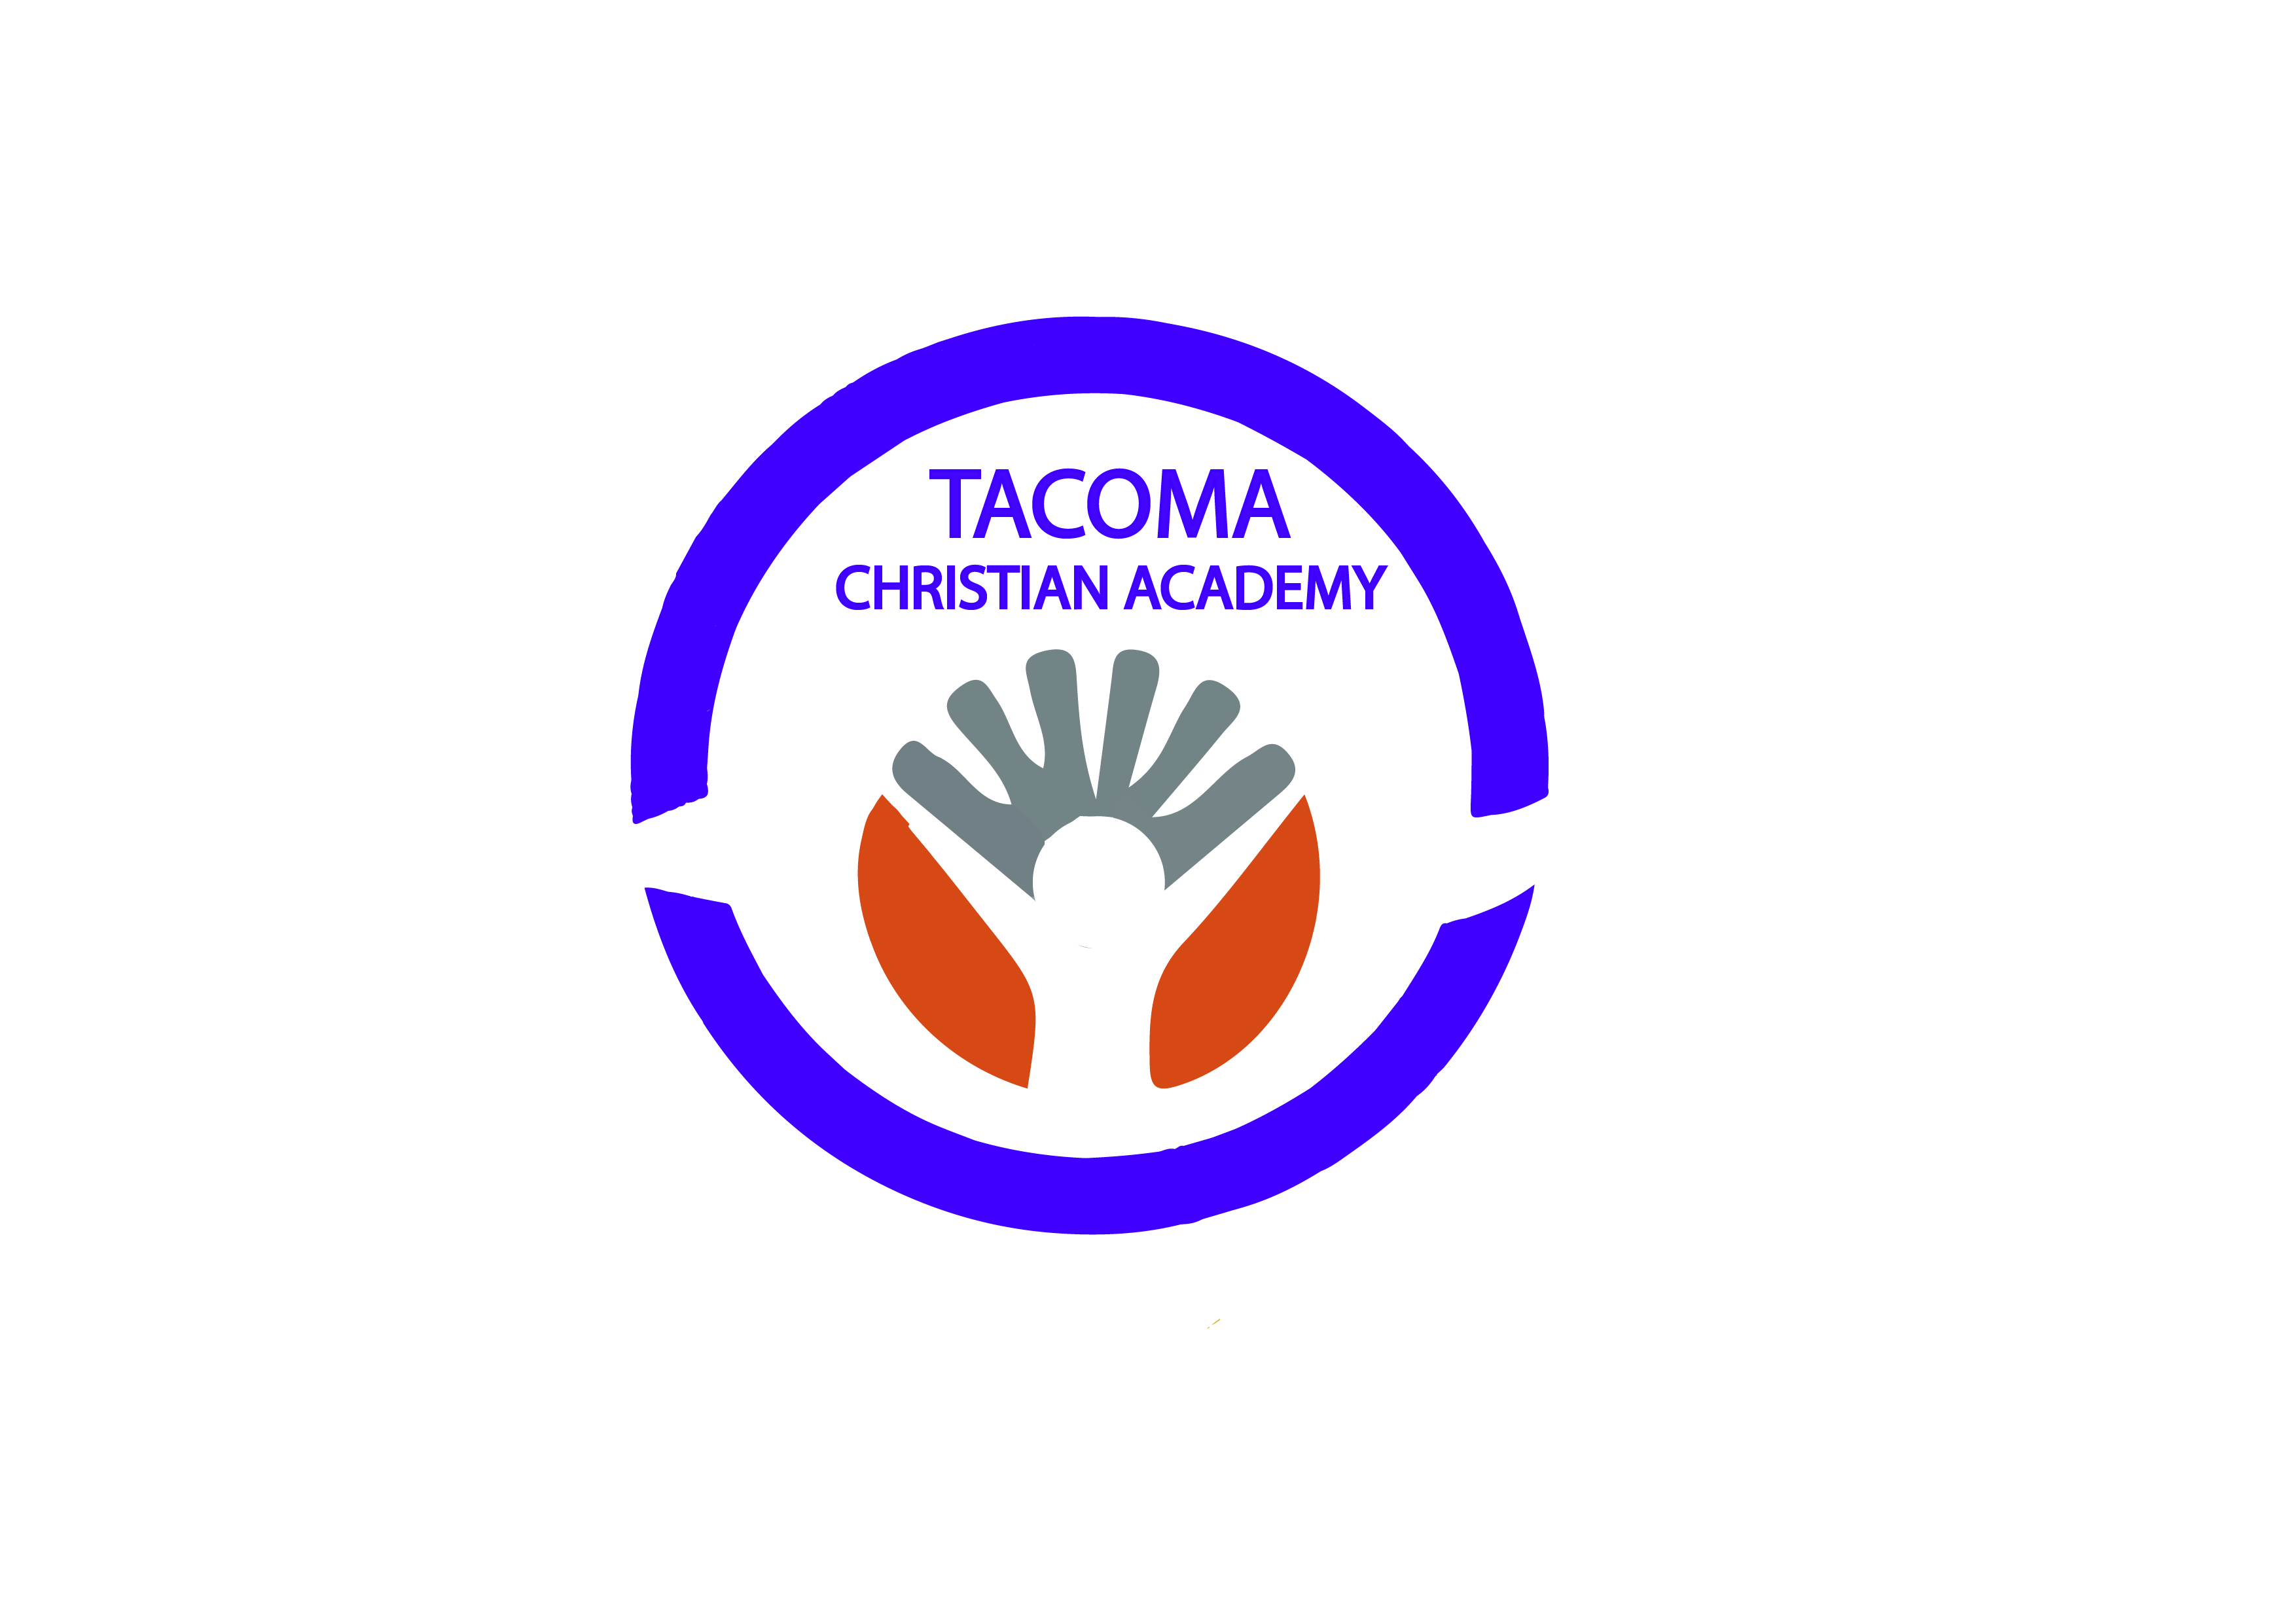 Logo Design by Palwasha Khan - Entry No. 14 in the Logo Design Contest Imaginative Logo Design for Tacoma Christian Academy.